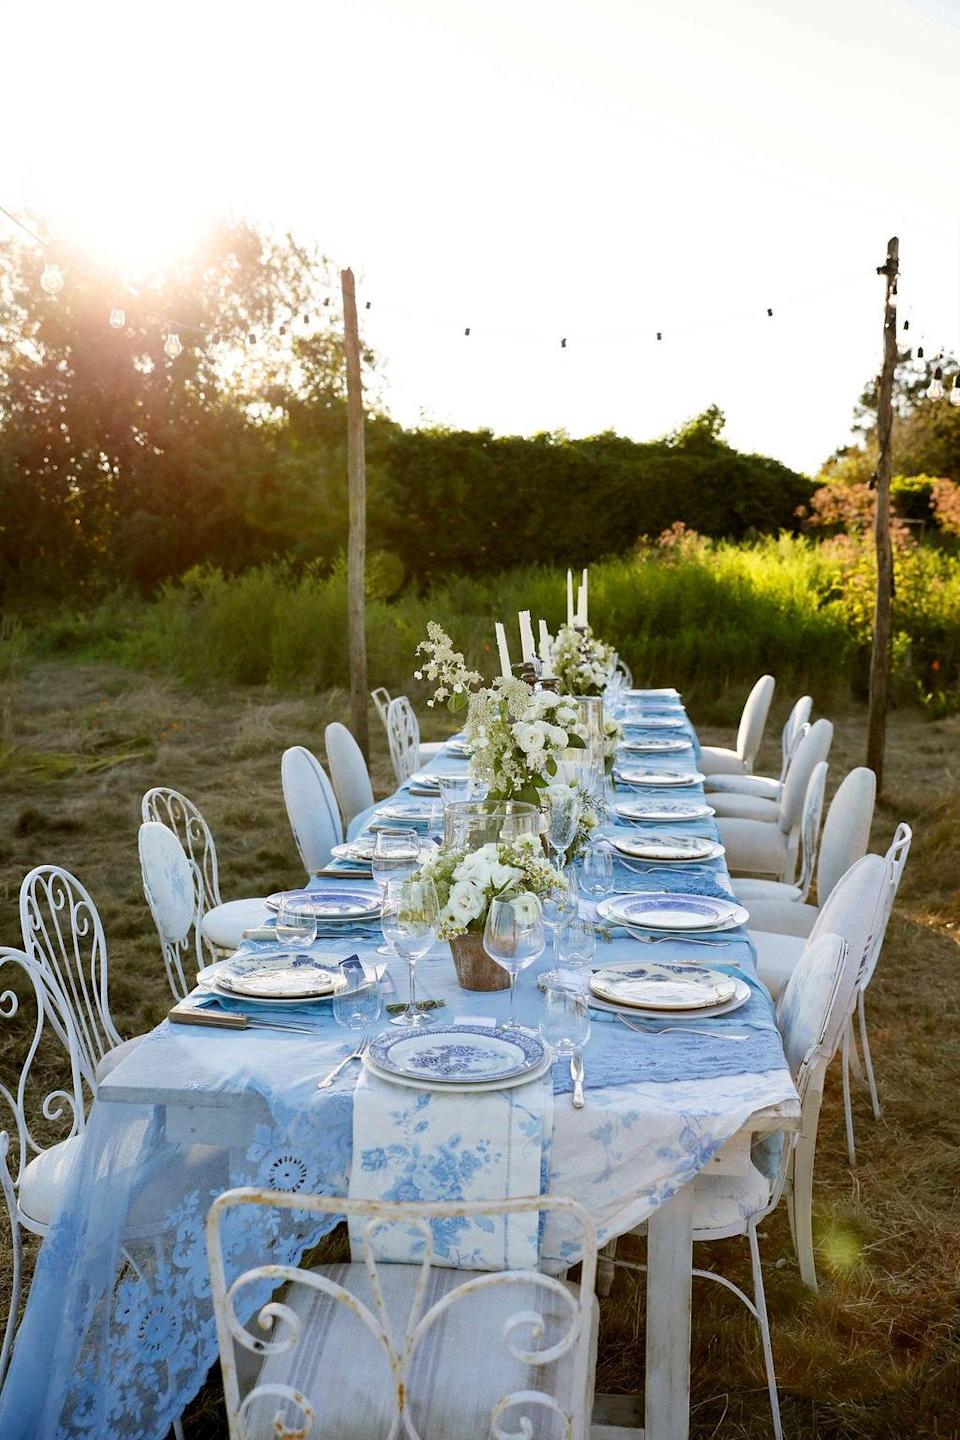 The main wedding party table in the late afternoon light.